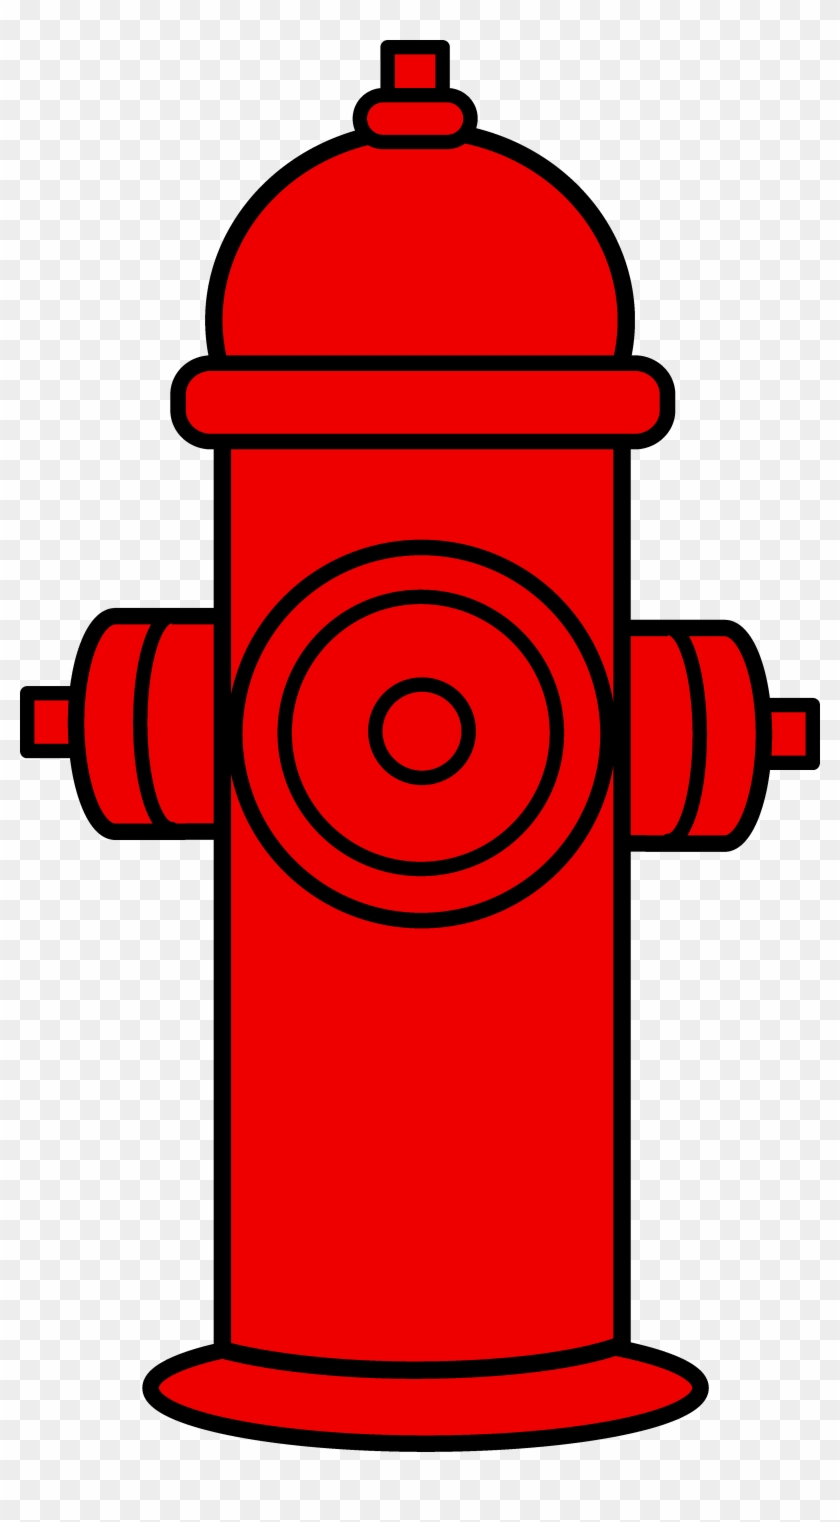 hight resolution of fire truck clipart fire hydrant paw patrol fire hydrant